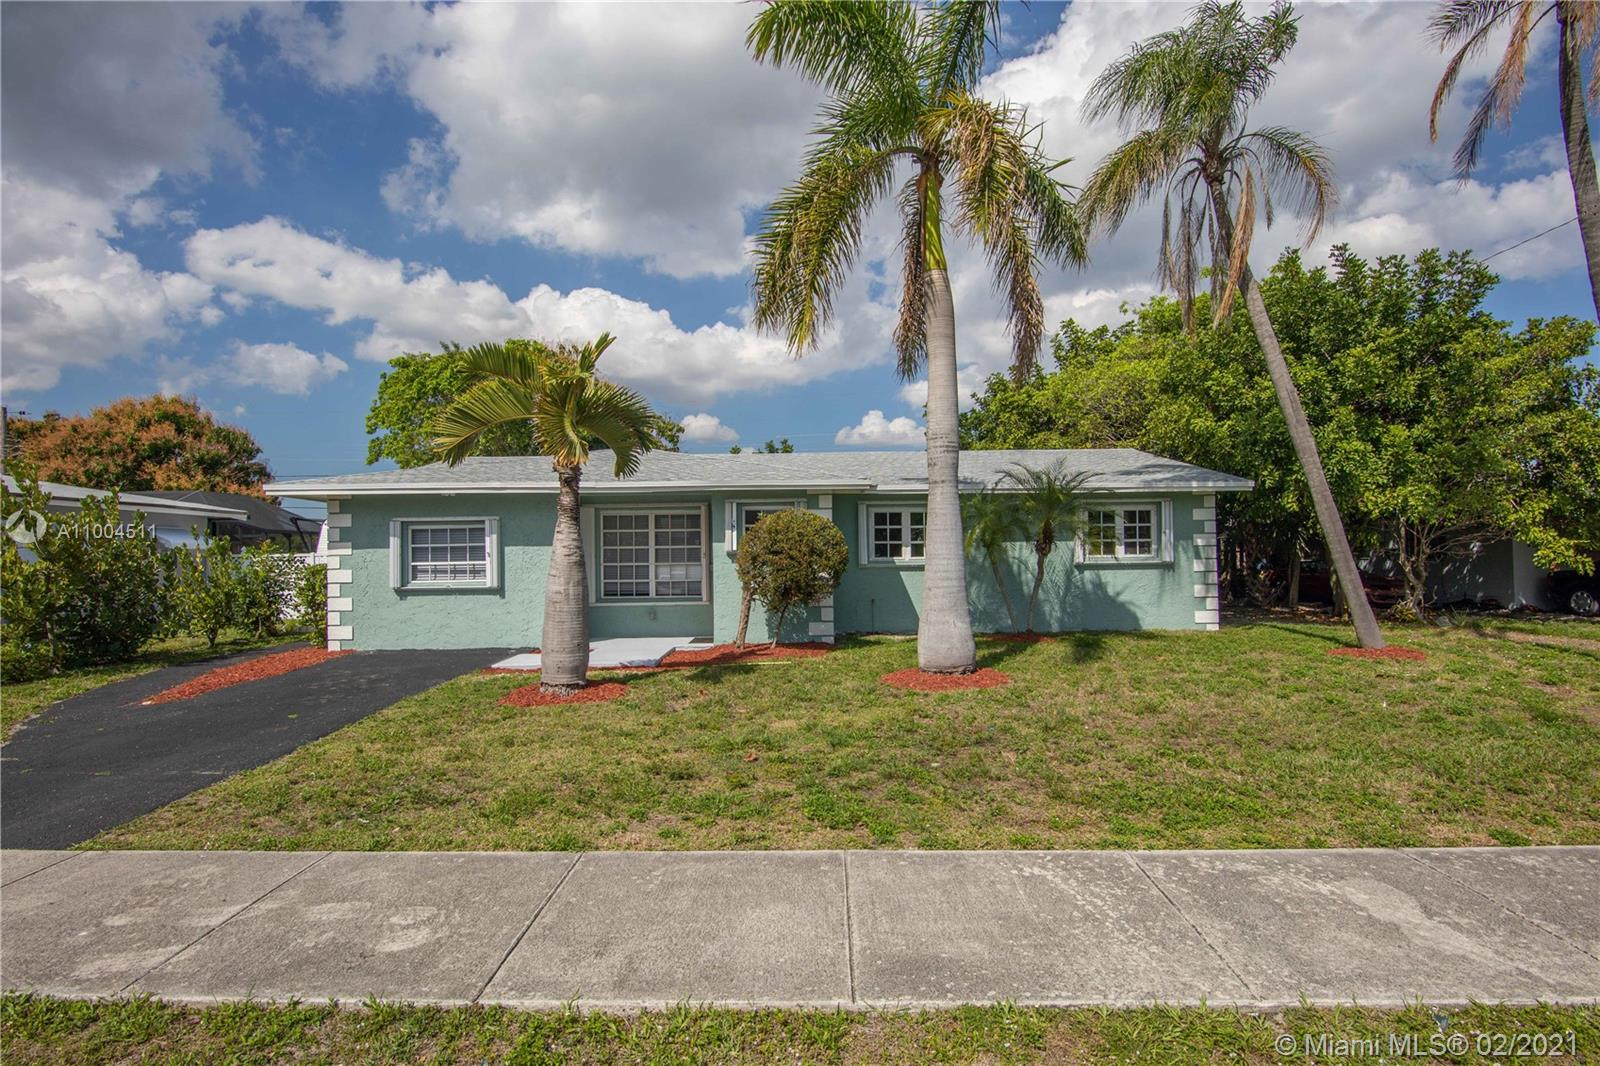 Completely updated home with large open floor plan.  New roof, custom kitchen with granite countertops and high-end stainless steel appliances, designer finishes in bathrooms, all LED lighting, new porcelain tile in all living areas, all new interior doors, trim and hardware,  plus much more.  Walking distance to Broward Medical, close to I95 and less than a few miles from the beaches. Move in ready! Available to only owner occupied buyers and certain income restrictions apply. See documents attached. Multiple offer situation, best and final due Tuesday March 2nd and decision by Wednesday March 3rd